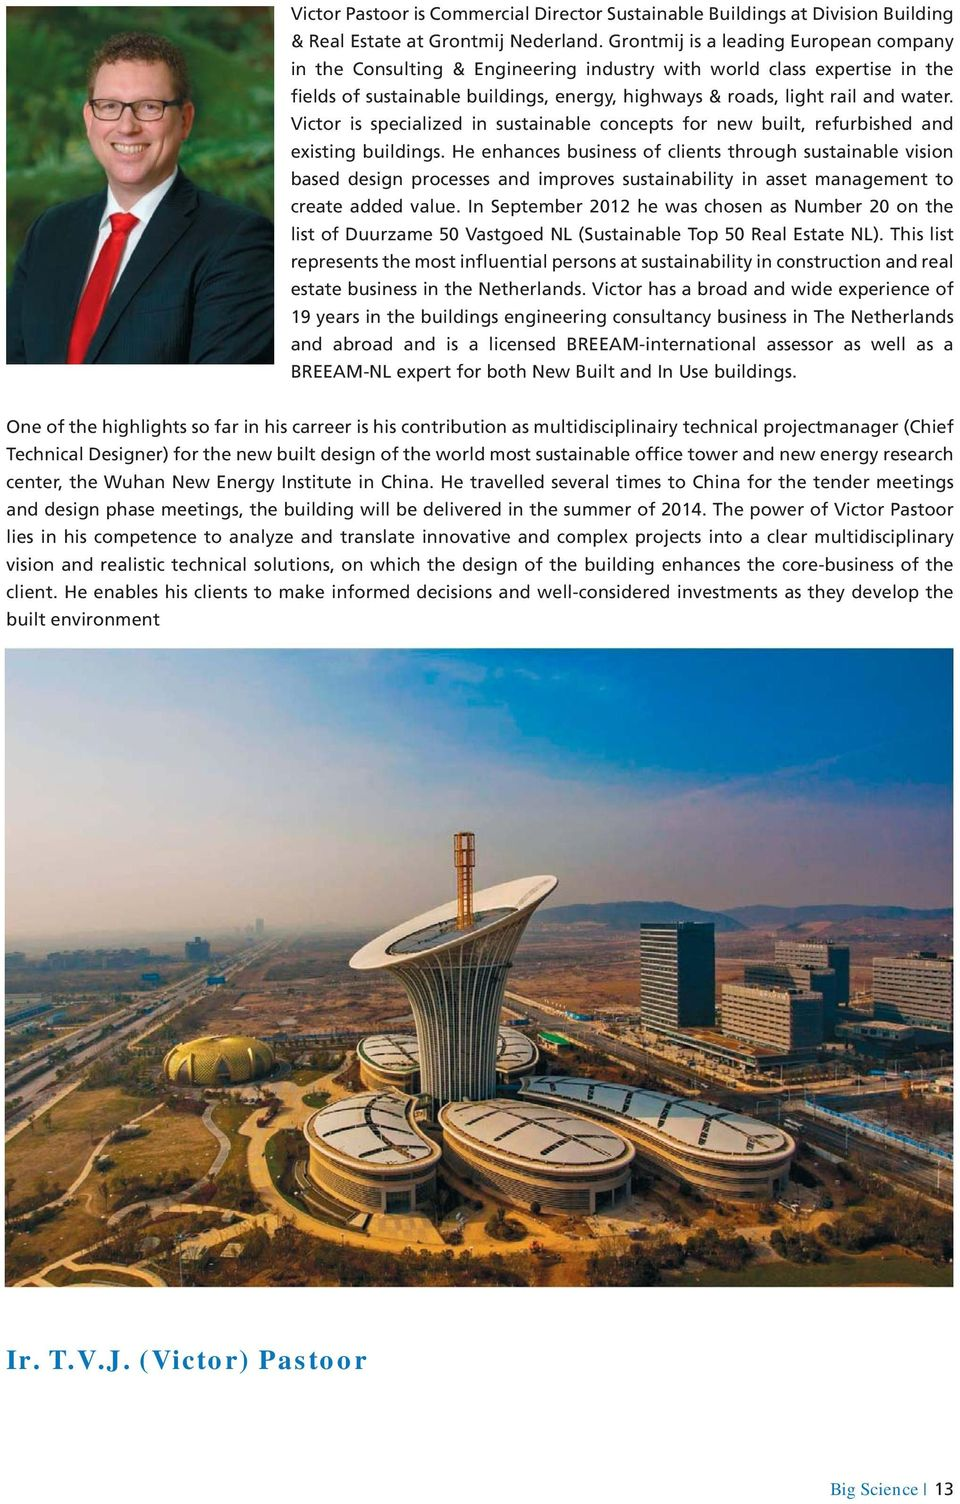 Victor is specialized in sustainable concepts for new built, refurbished and existing buildings.